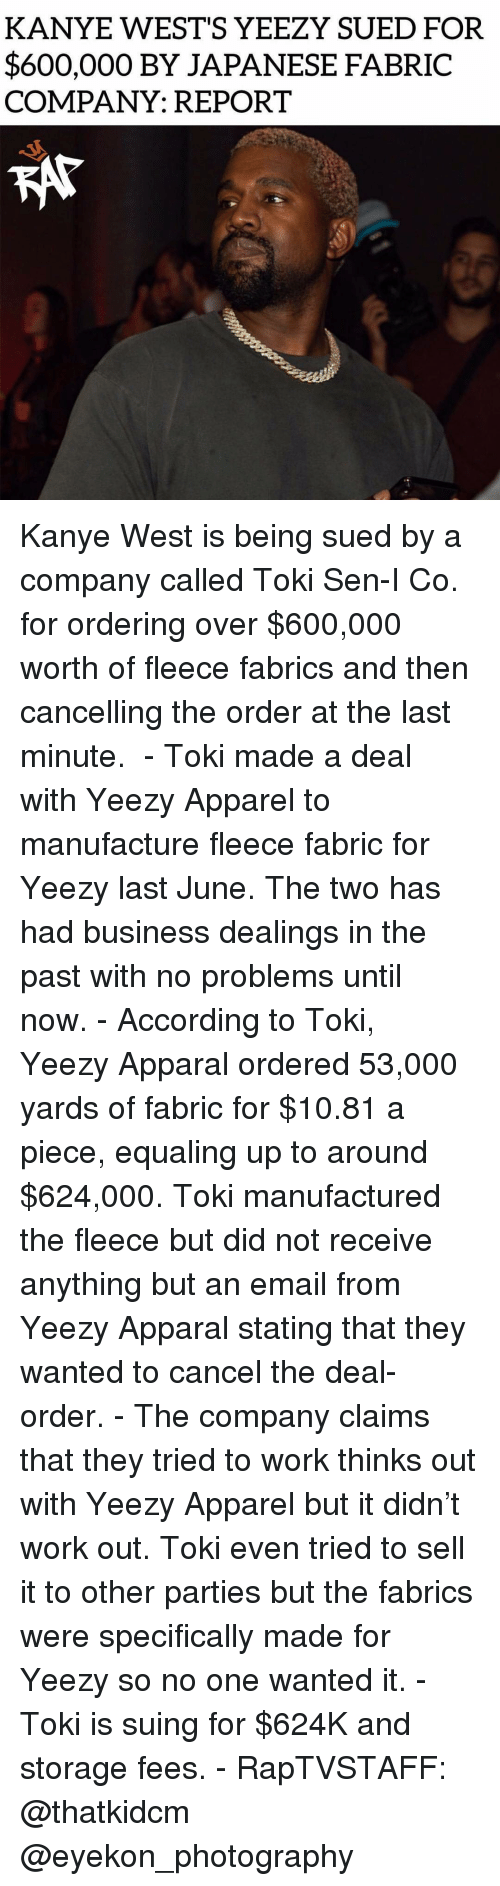 wests: KANYE WEST'S YEEZY SUED FOR  $600,000 BY JAPANESE FABRIC  COMPANY: REPORT Kanye West is being sued by a company called Toki Sen-I Co. for ordering over $600,000 worth of fleece fabrics and then cancelling the order at the last minute. ⁣ -⁣ Toki made a deal with Yeezy Apparel to manufacture fleece fabric for Yeezy last June. The two has had business dealings in the past with no problems until now.⁣ -⁣ According to Toki, Yeezy Apparal ordered 53,000 yards of fabric for $10.81 a piece, equaling up to around $624,000. Toki manufactured the fleece but did not receive anything but an email from Yeezy Apparal stating that they wanted to cancel the deal-order.⁣ -⁣ The company claims that they tried to work thinks out with Yeezy Apparel but it didn't work out. Toki even tried to sell it to other parties but the fabrics were specifically made for Yeezy so no one wanted it.⁣ -⁣ Toki is suing for $624K and storage fees.⁣ -⁣ RapTVSTAFF: @thatkidcm⁣ @eyekon_photography